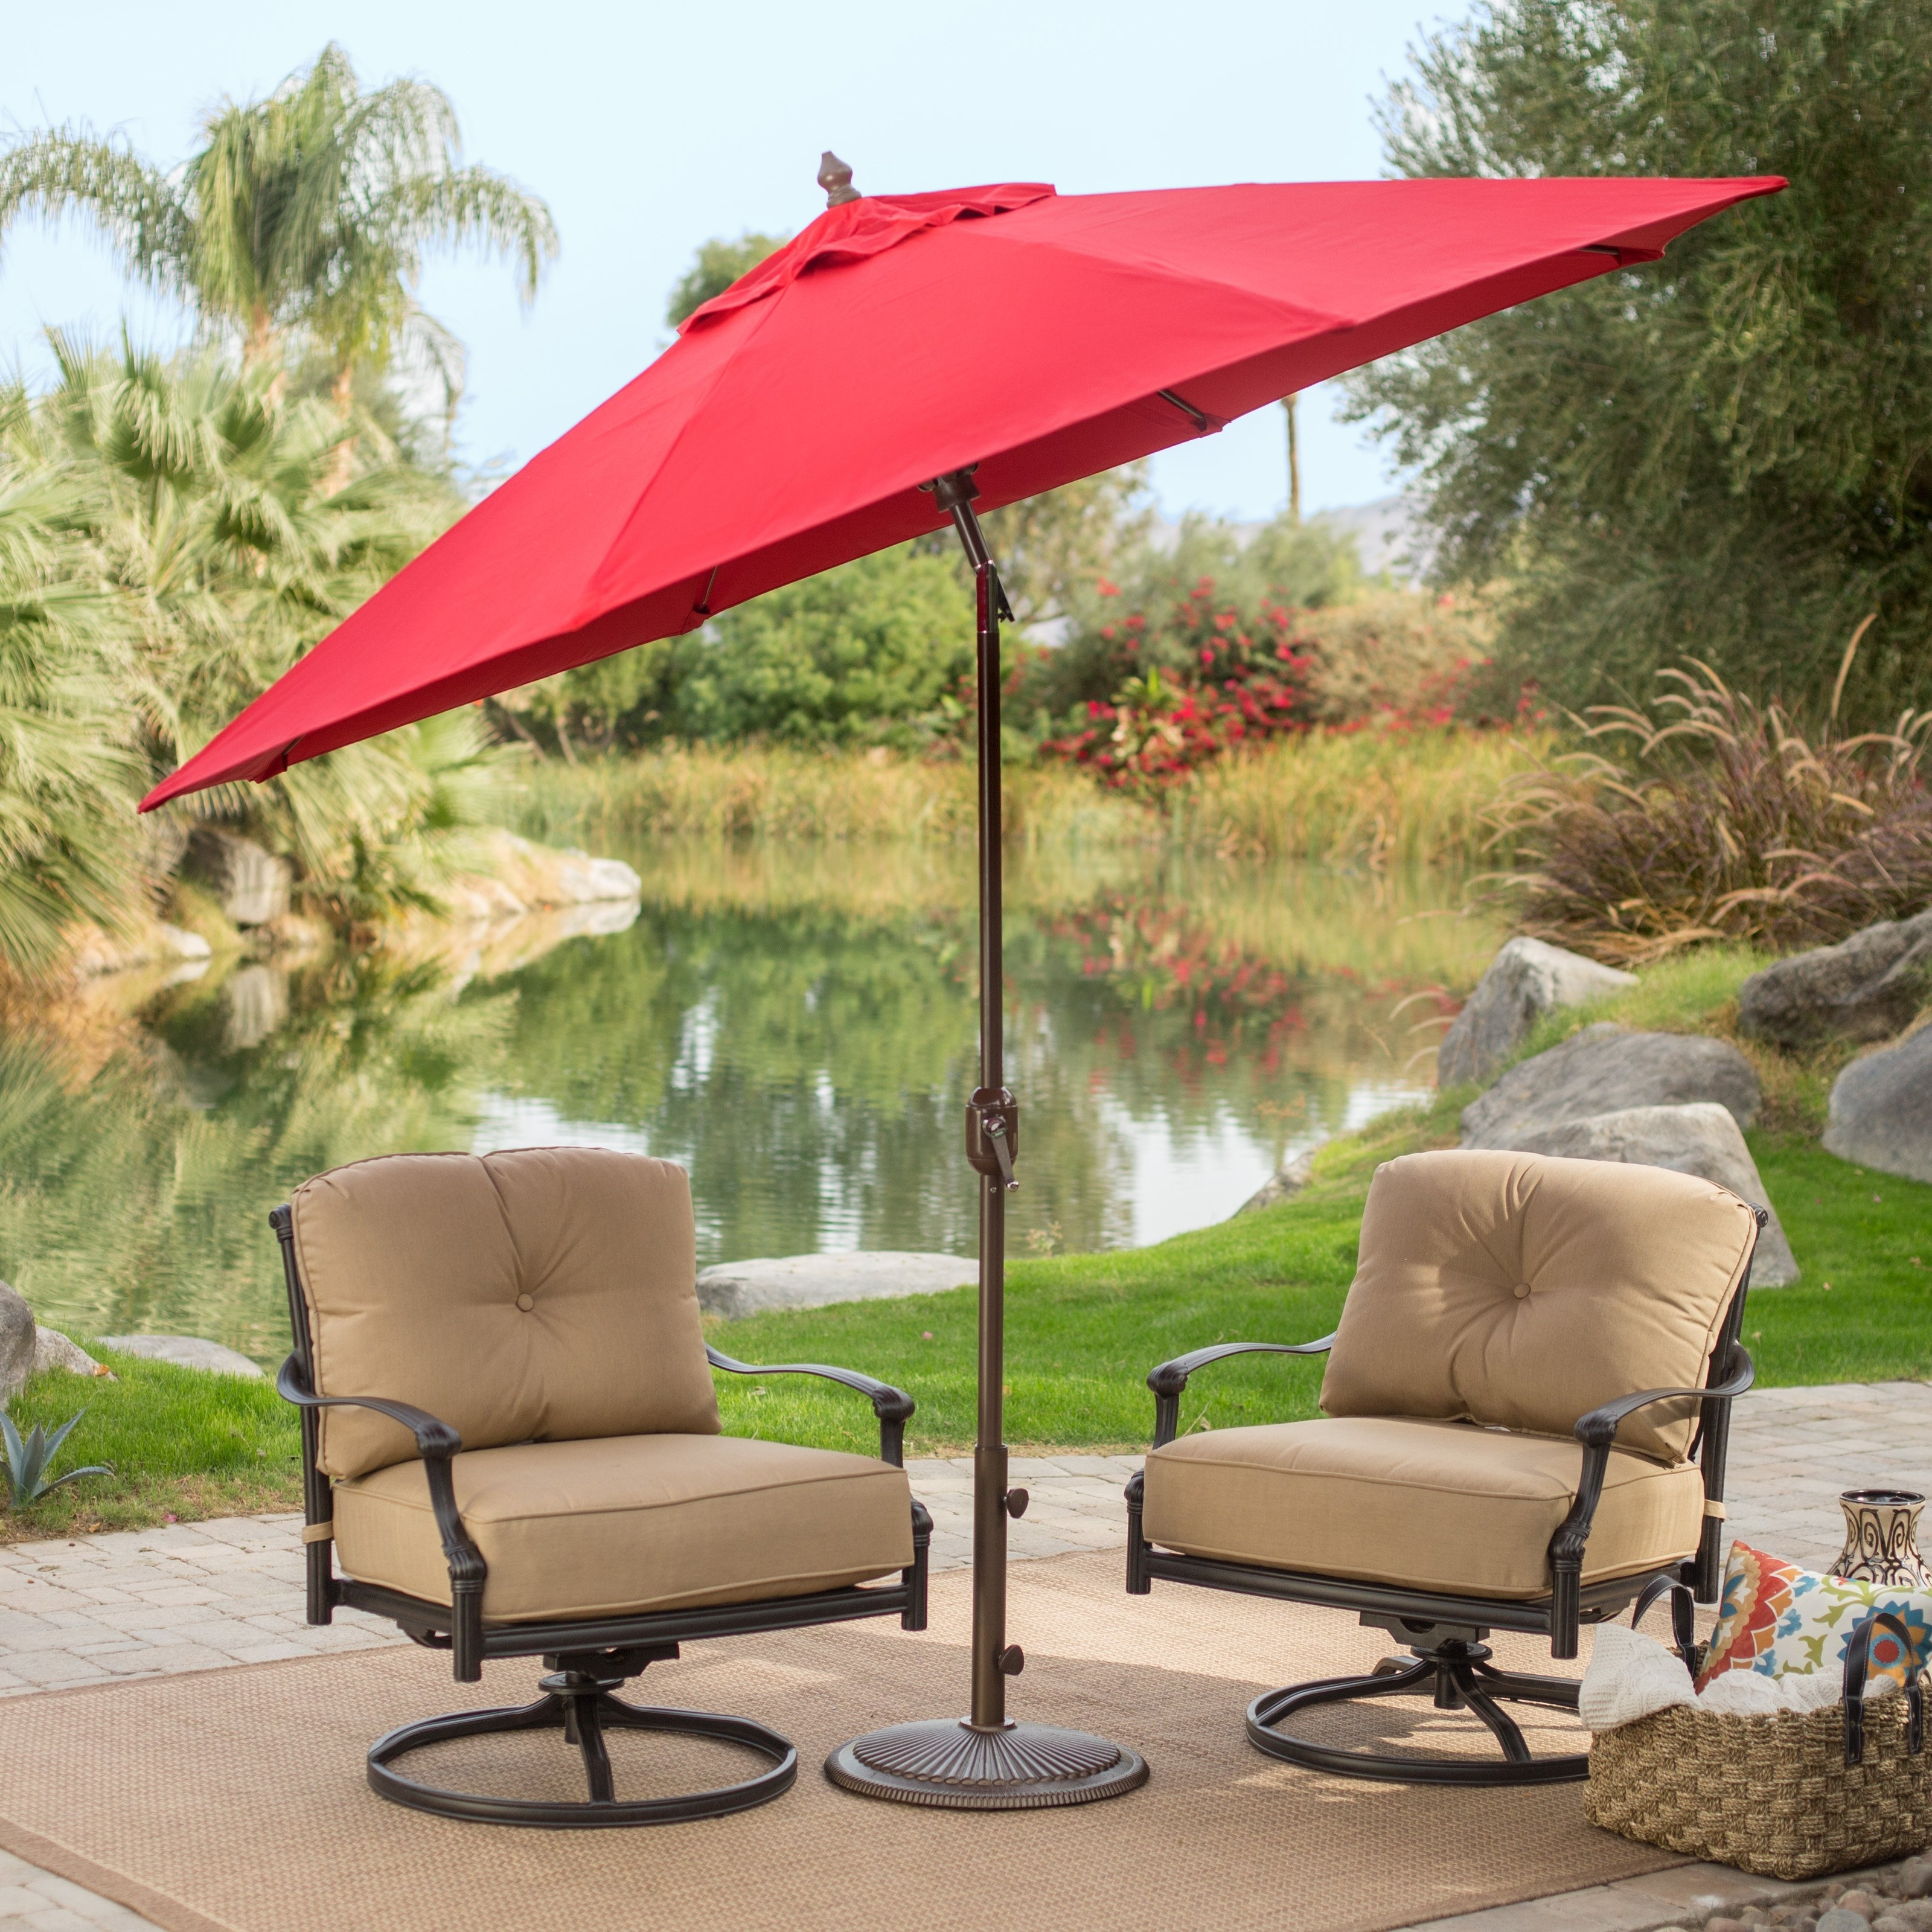 Most Recently Released Patio Umbrellas With Fans Within Coral Coast 9 Ft (View 12 of 20)